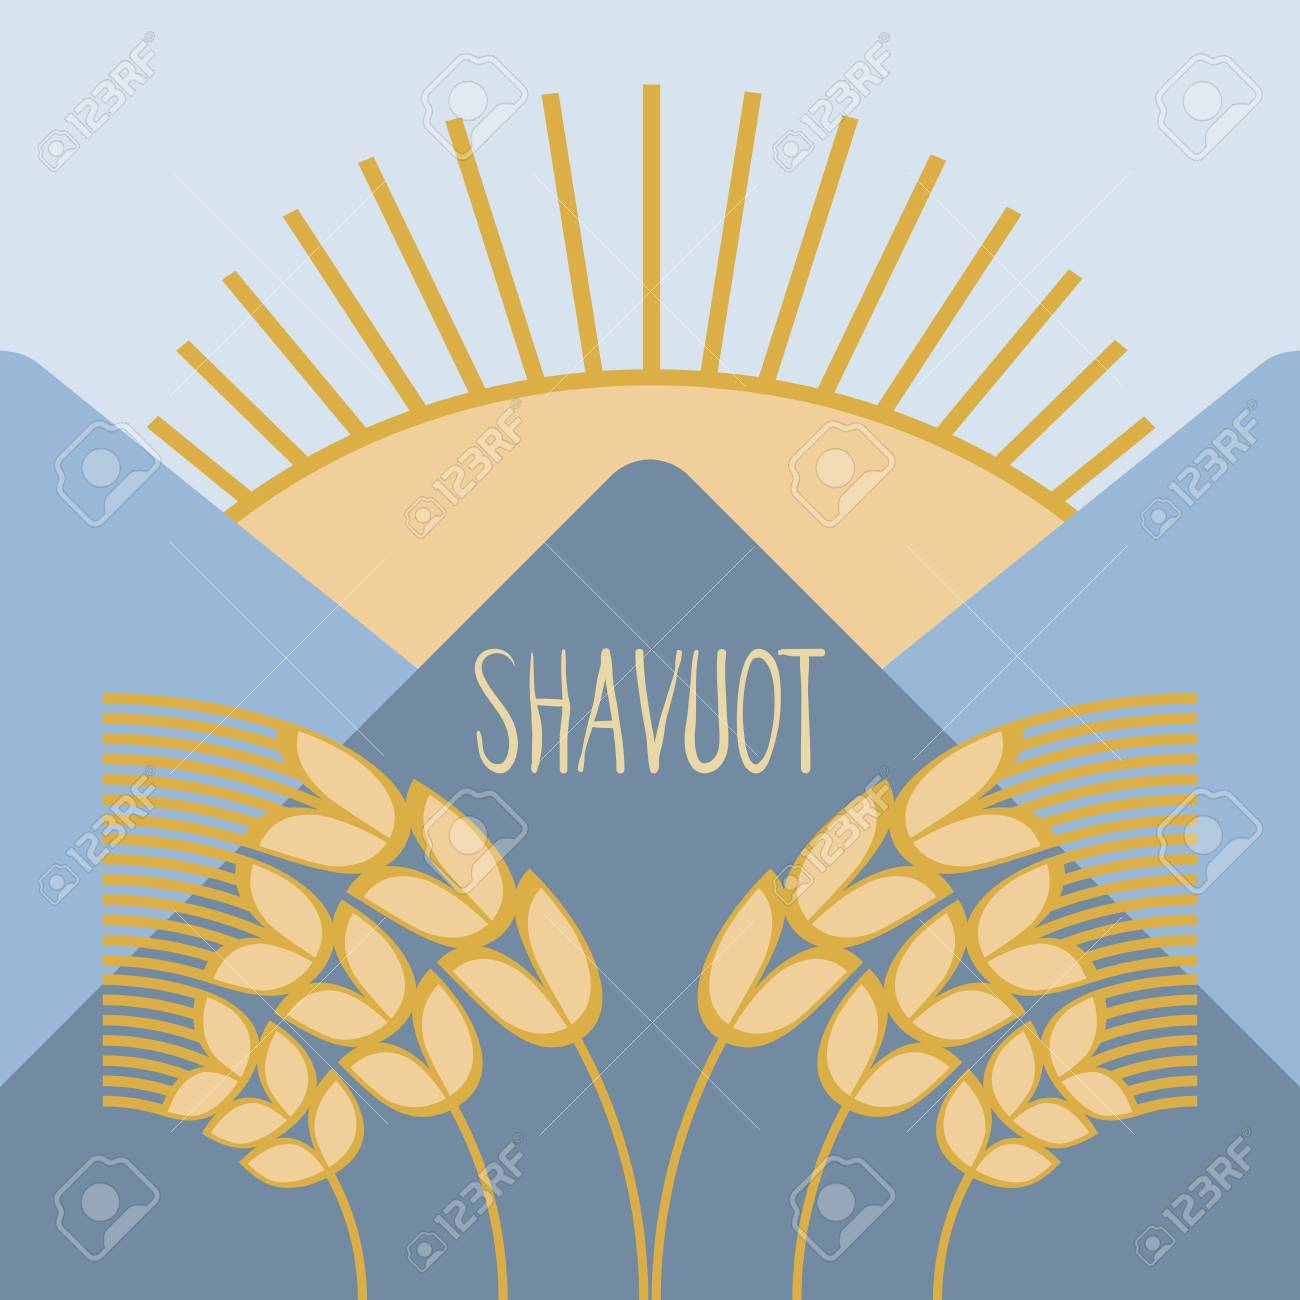 hight resolution of template in a minimalist style to create labels stickers uncluttered layout of the poster shavuot vector illustration for jewish holiday frame of wheat